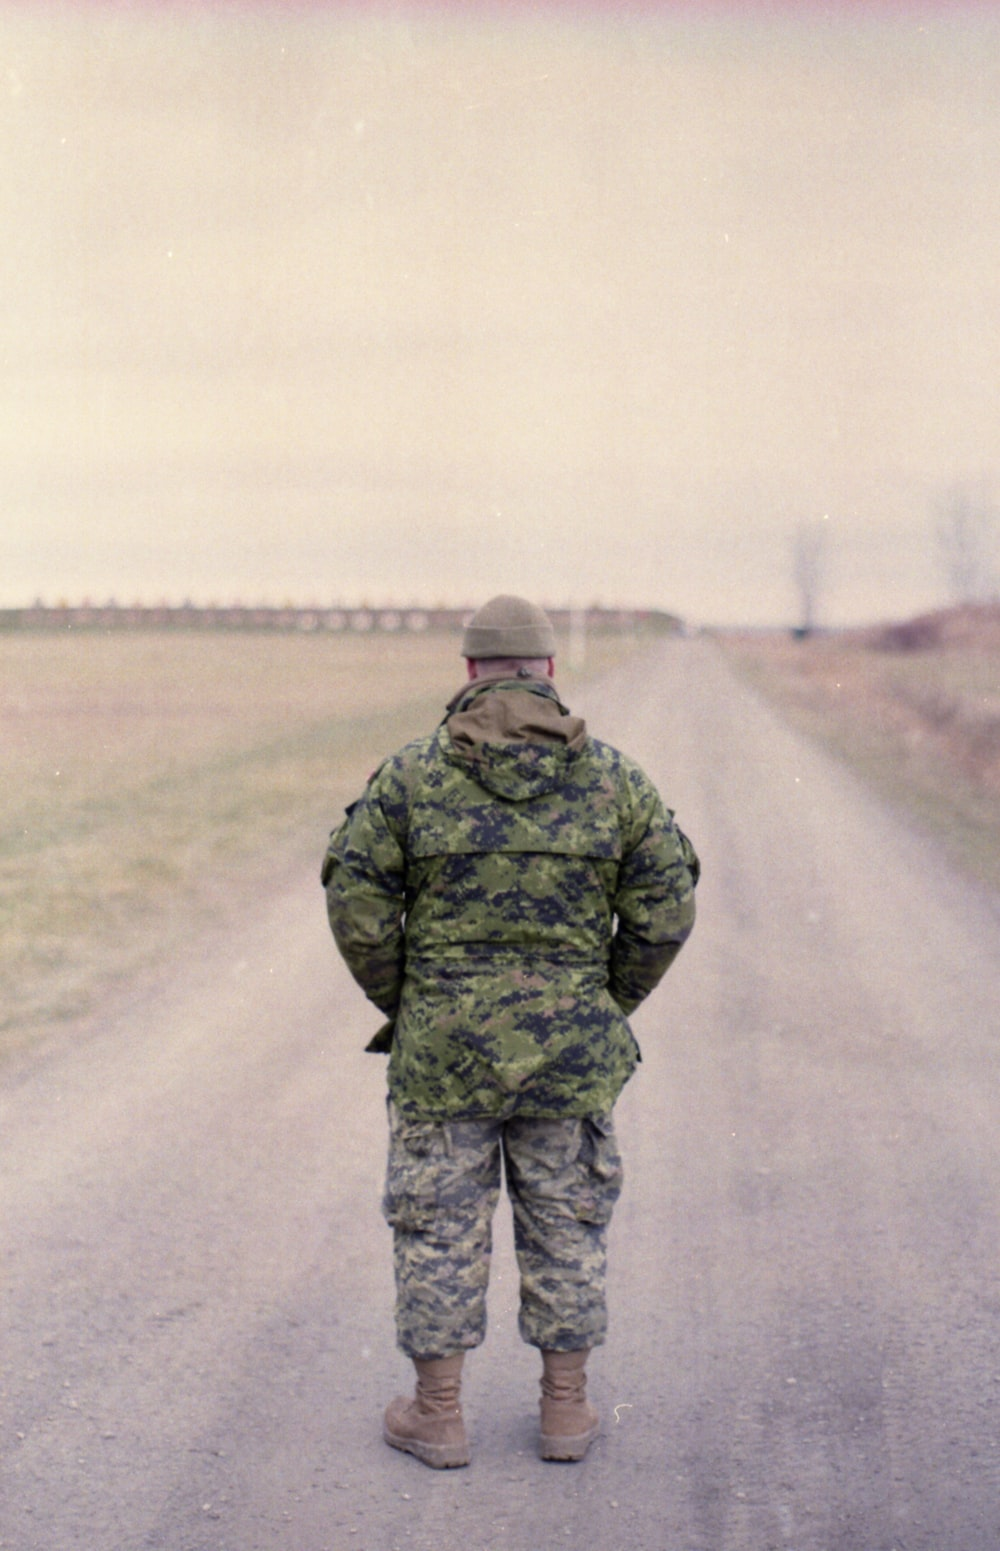 man in green camouflage uniform standing on road during daytime